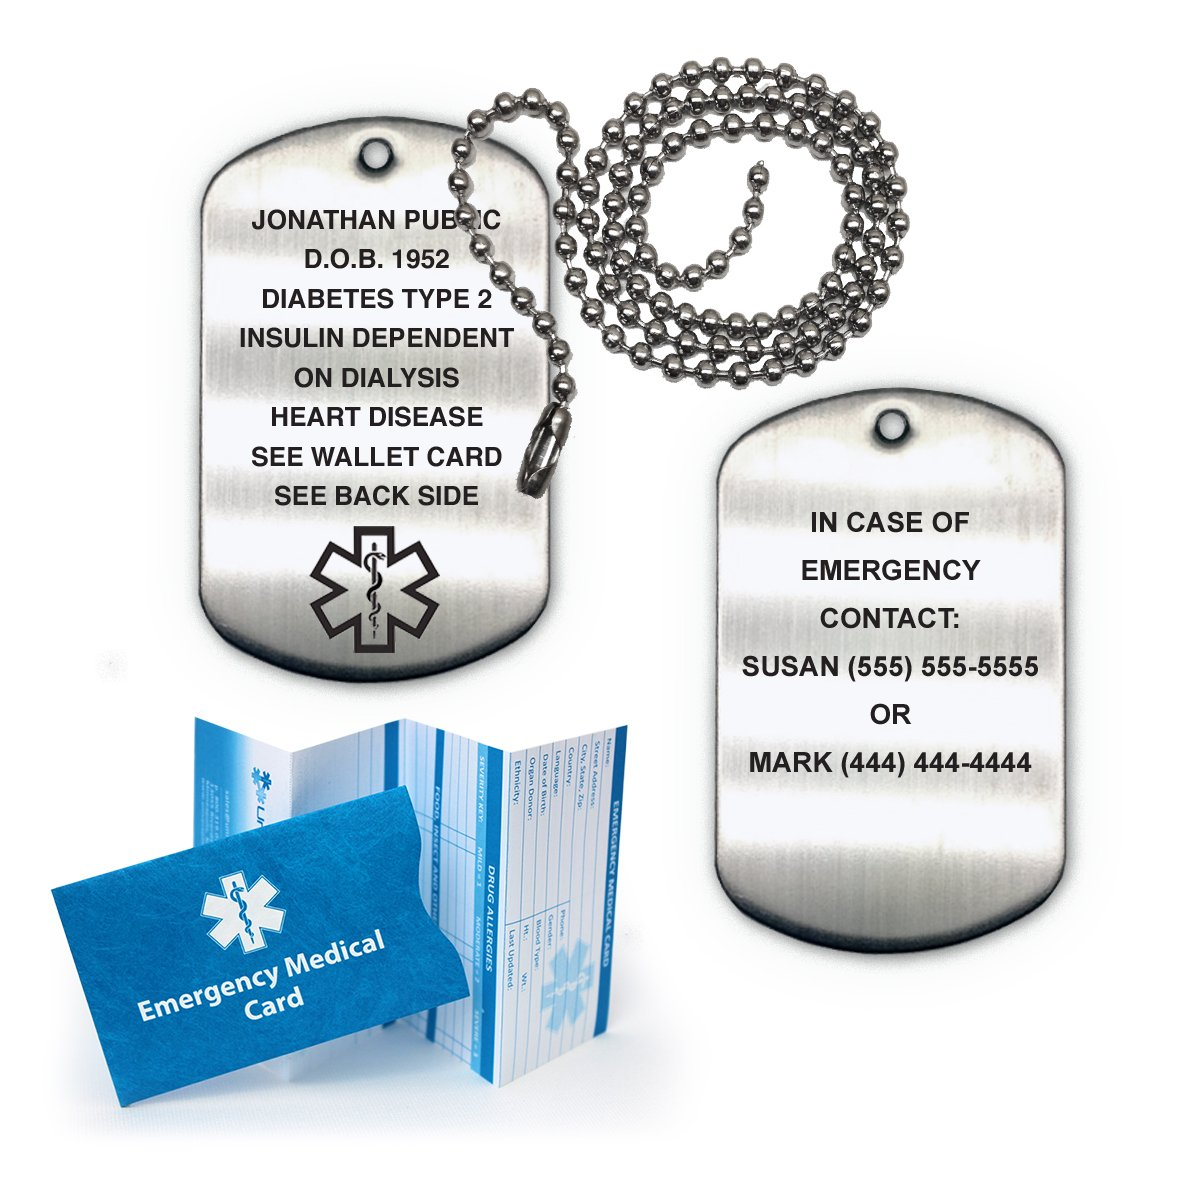 Medical Alert ID Brushed Stainless Steel Dog Tag with 27'' Chain (incl. 18 Lines of Custom Engraving) by Universal Medical Data